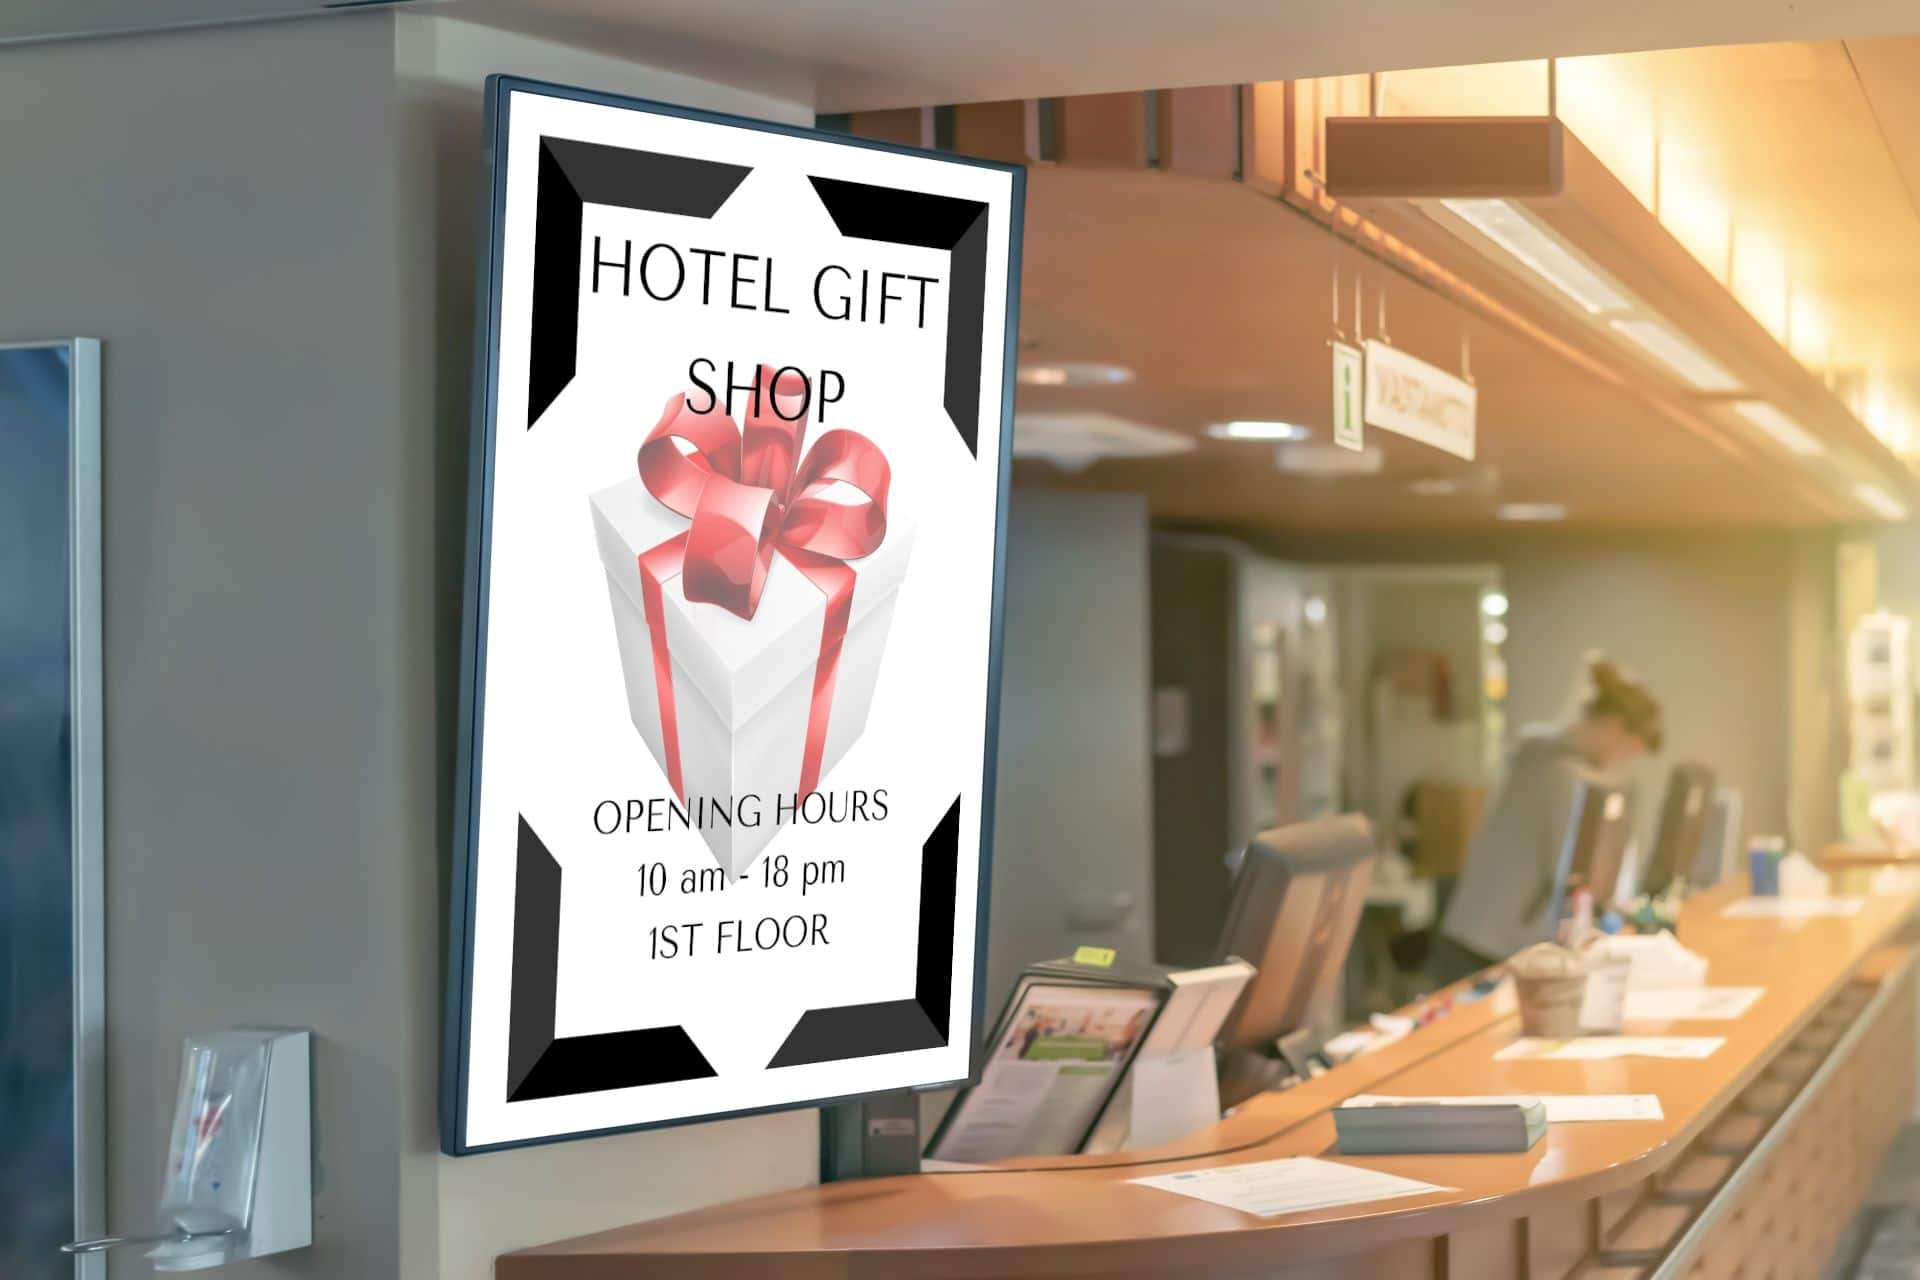 Digital signage display in front of hotel reception with information about hotel gift shop